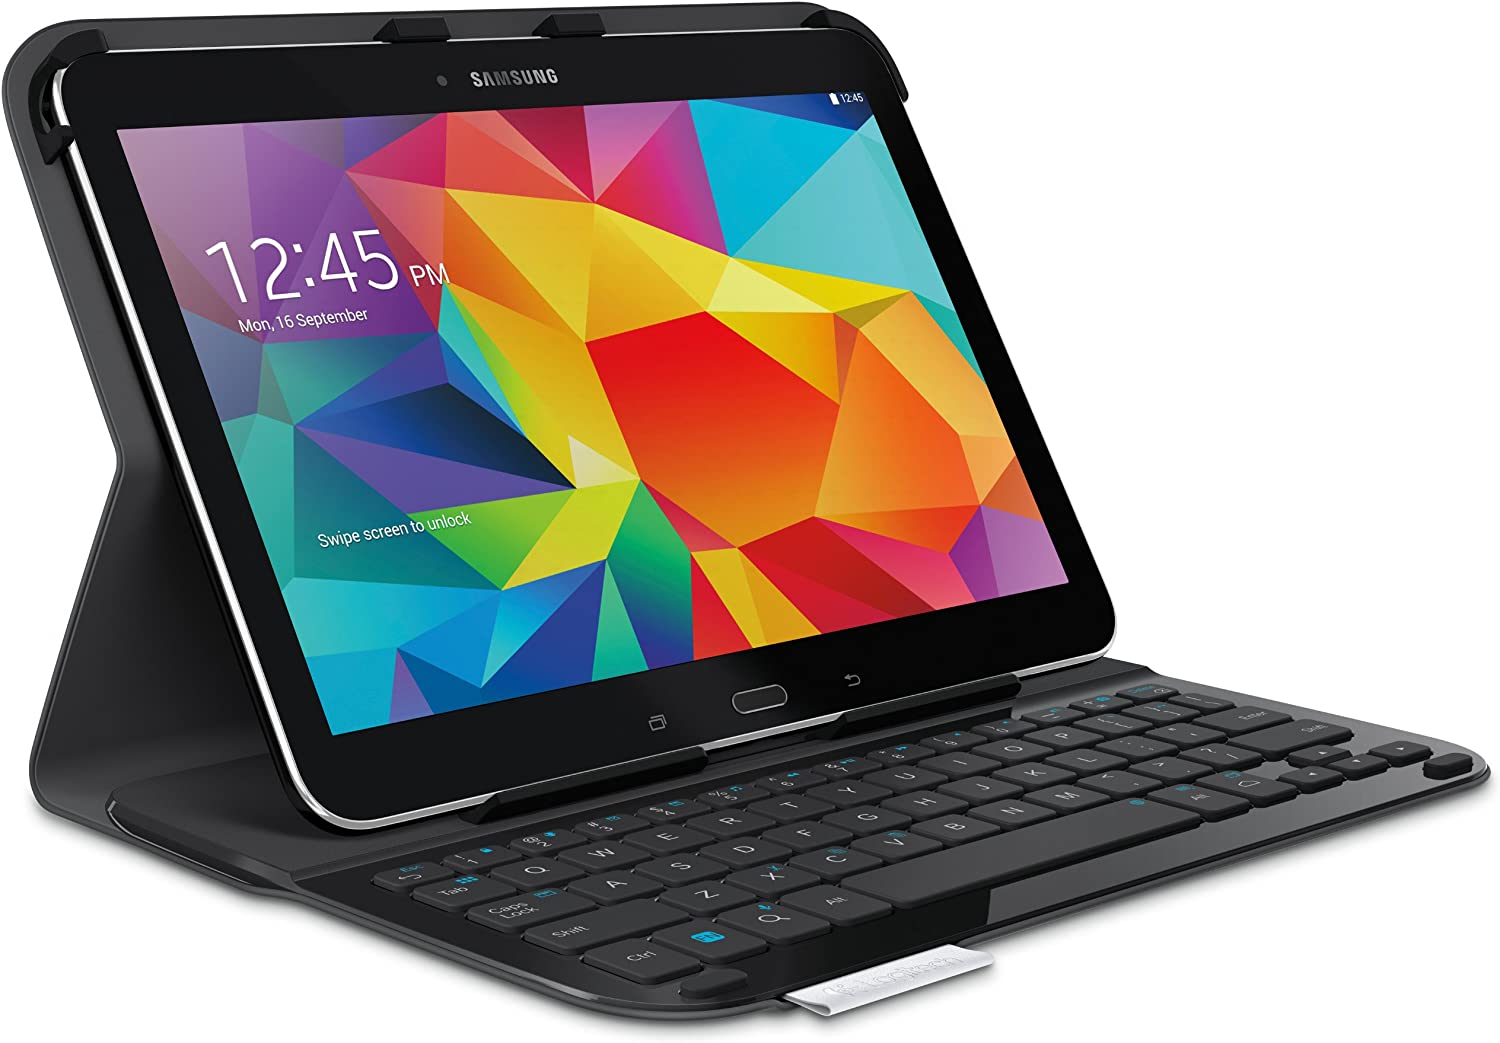 Logitech Ultrathin Keyboard Folio for Samsung Galaxy Tab 4 - 10.1 Inches - NOT for Tab A, NOT for Tab 2, will ONLY Fit Galaxy Tab 4 -10.1 Inch Version